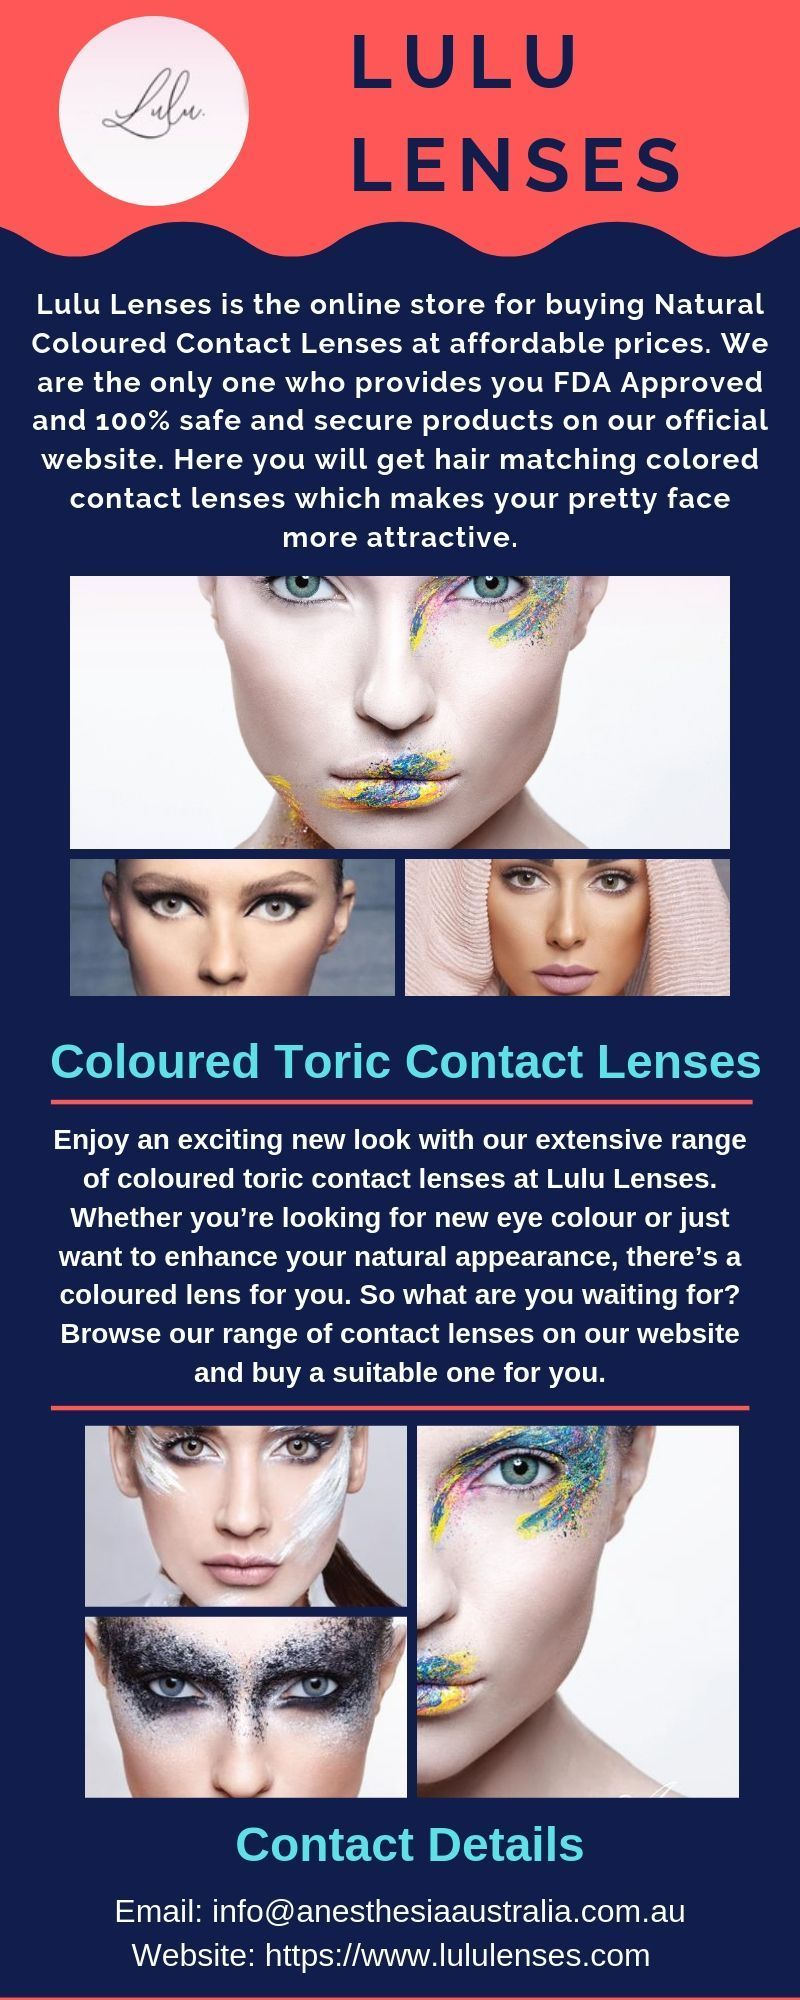 Www Lululenses Co Lulu Lenses Offers The Best Quality Of Contact Lenses To Www L In 2020 Coloured Contact Lenses Toric Contact Lenses Contact Lenses Online